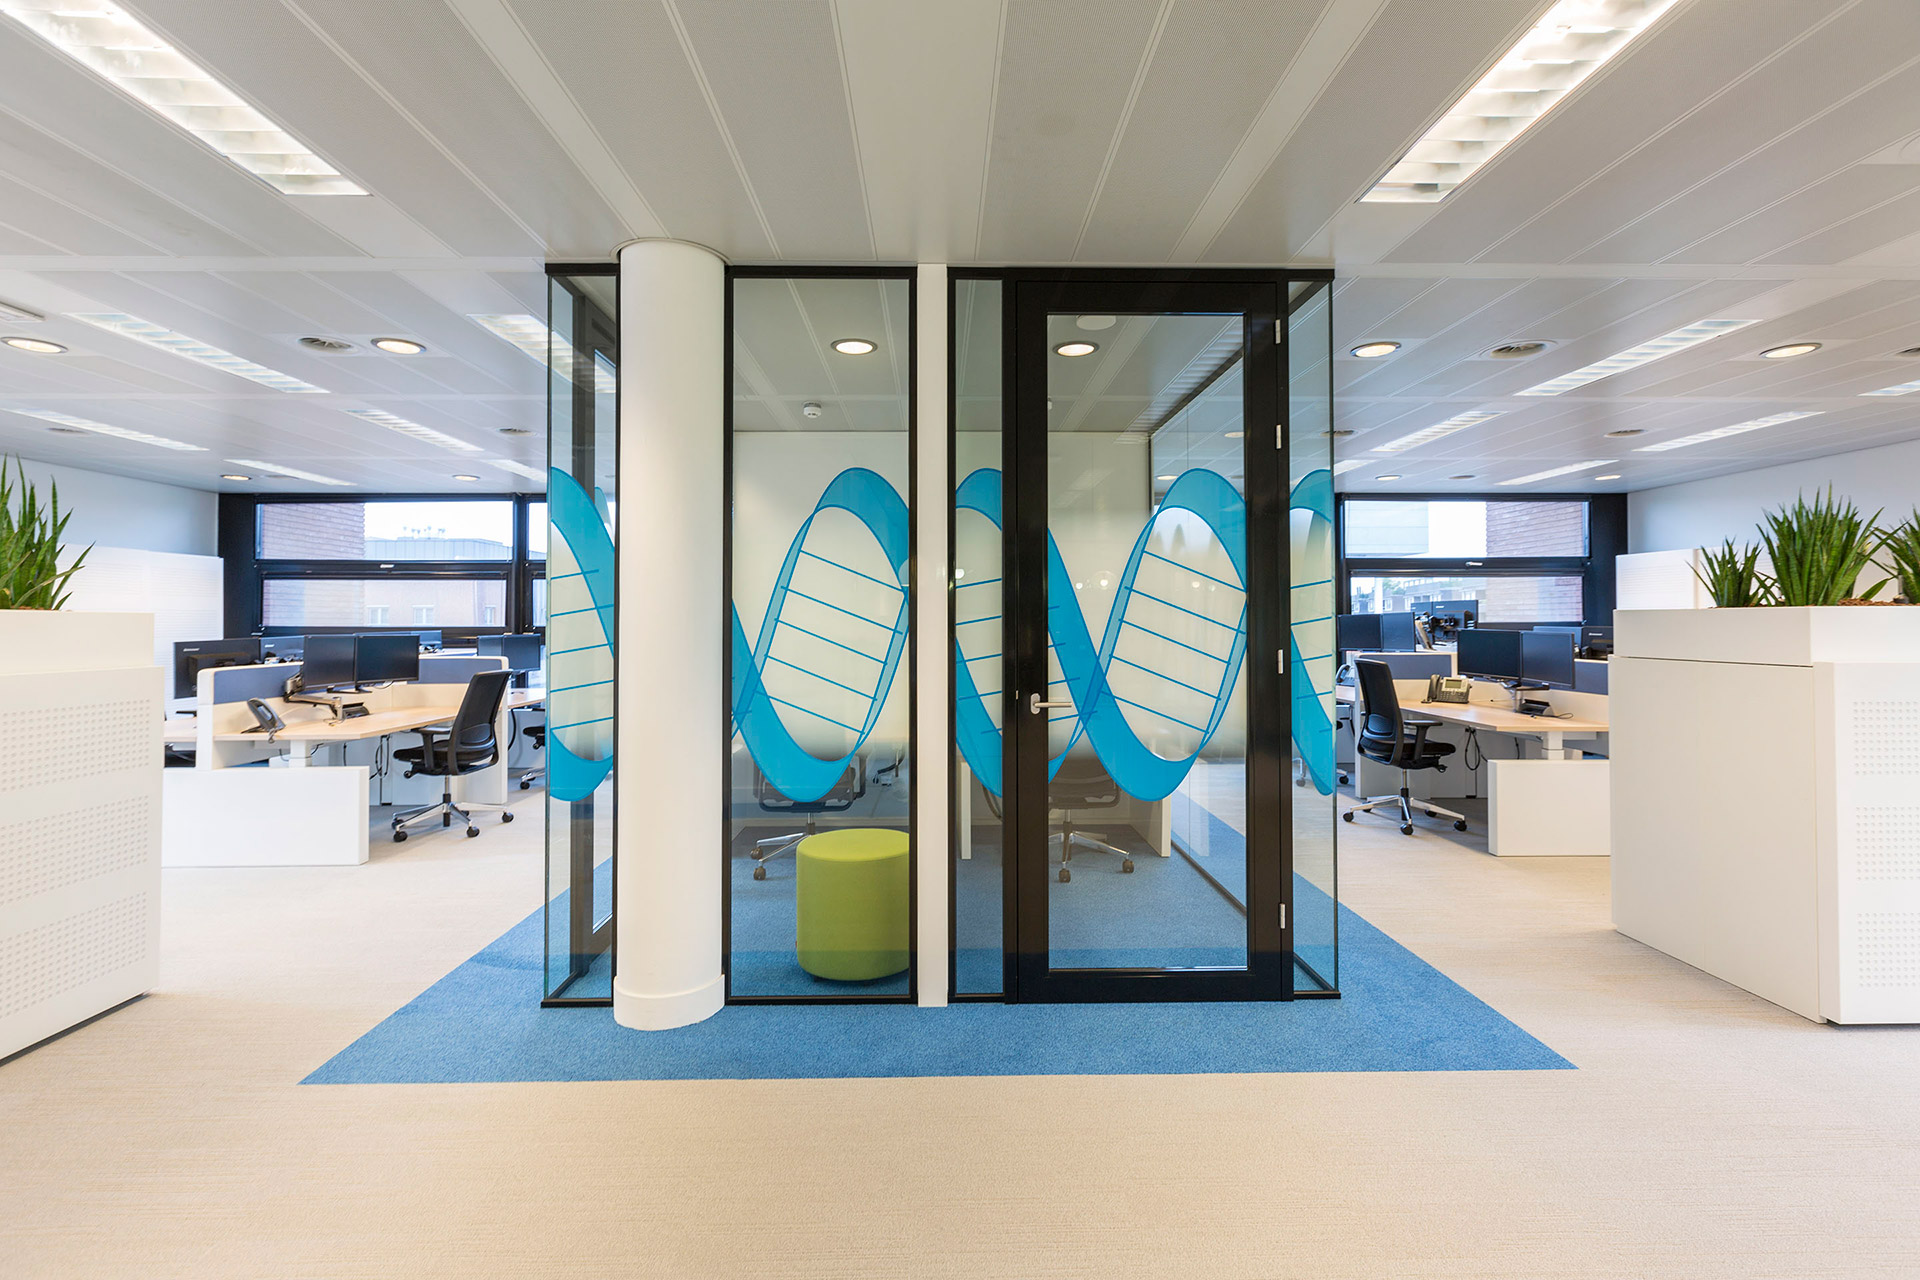 Office fit out tetris db for Office fit out companies